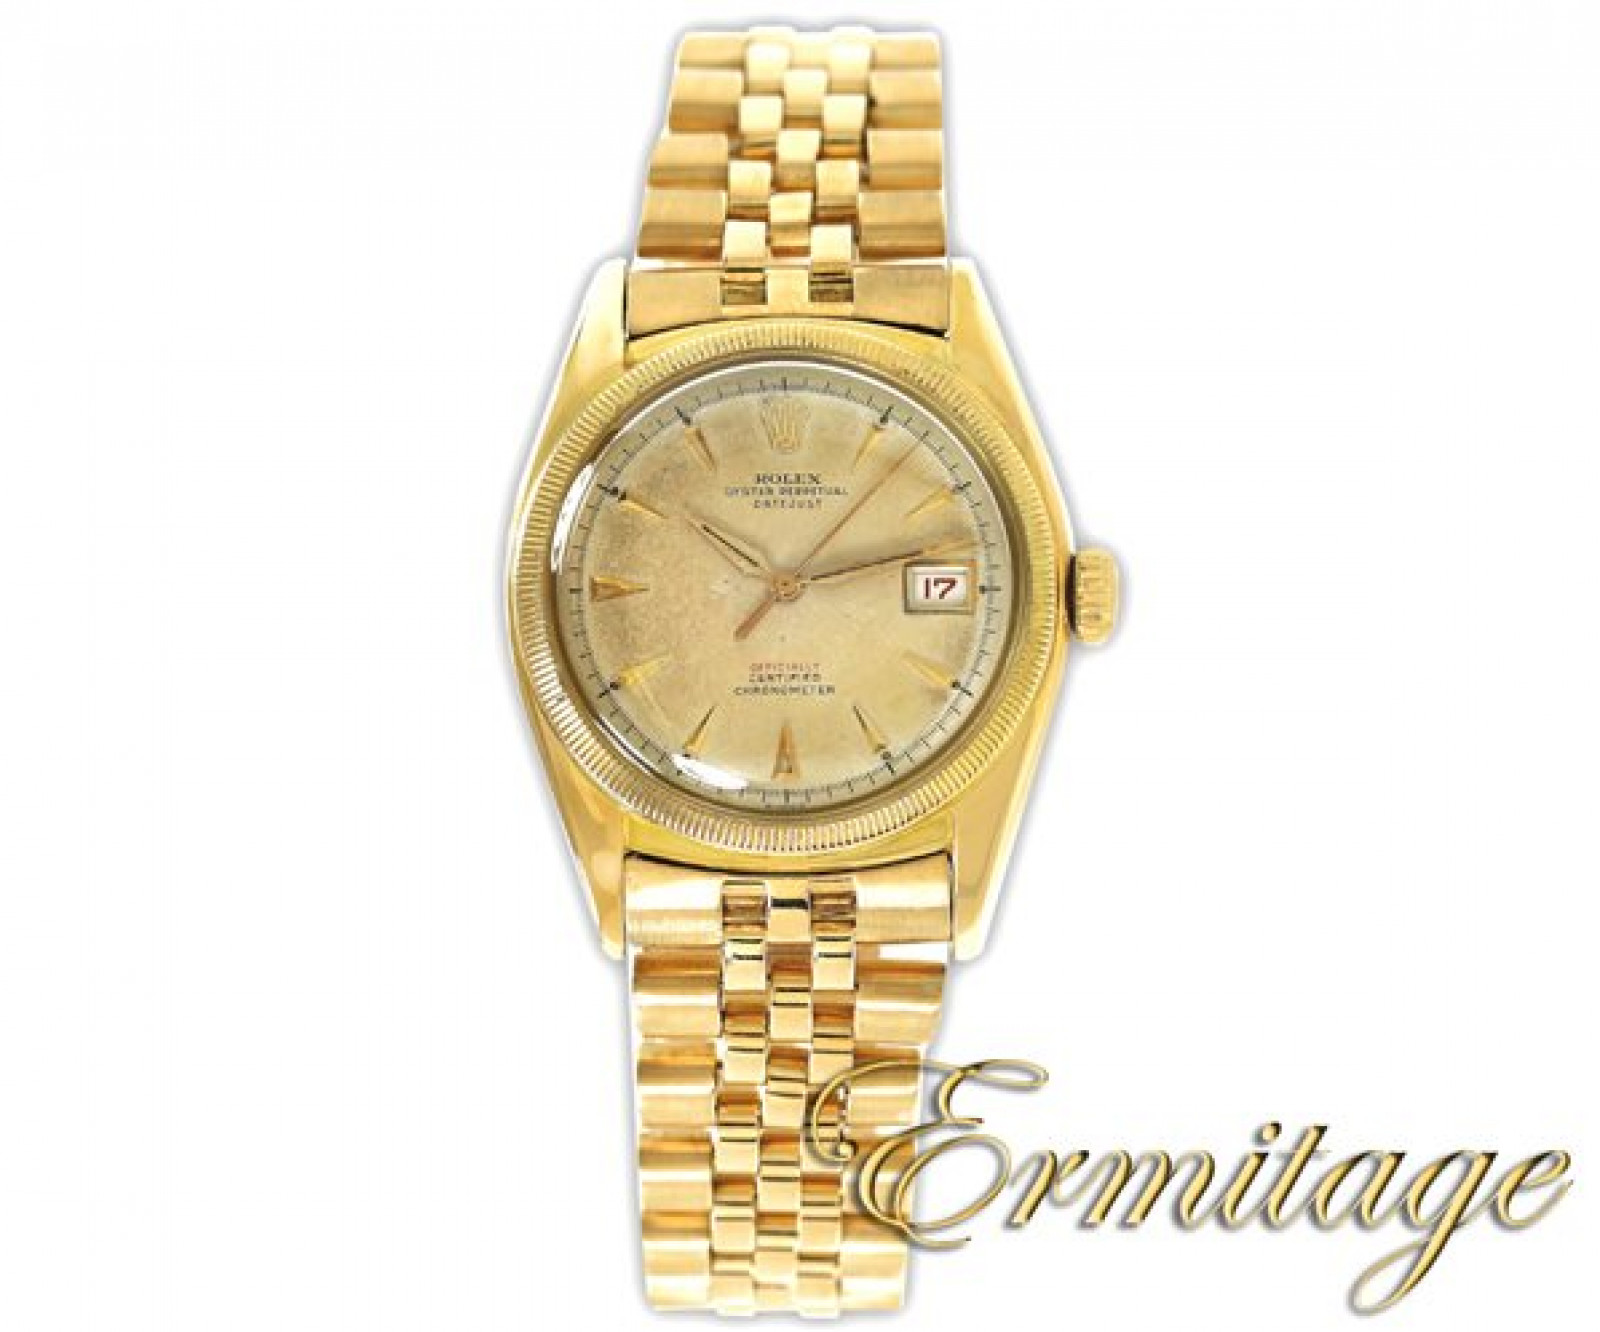 Vintage Rolex Datejust 6105 Gold